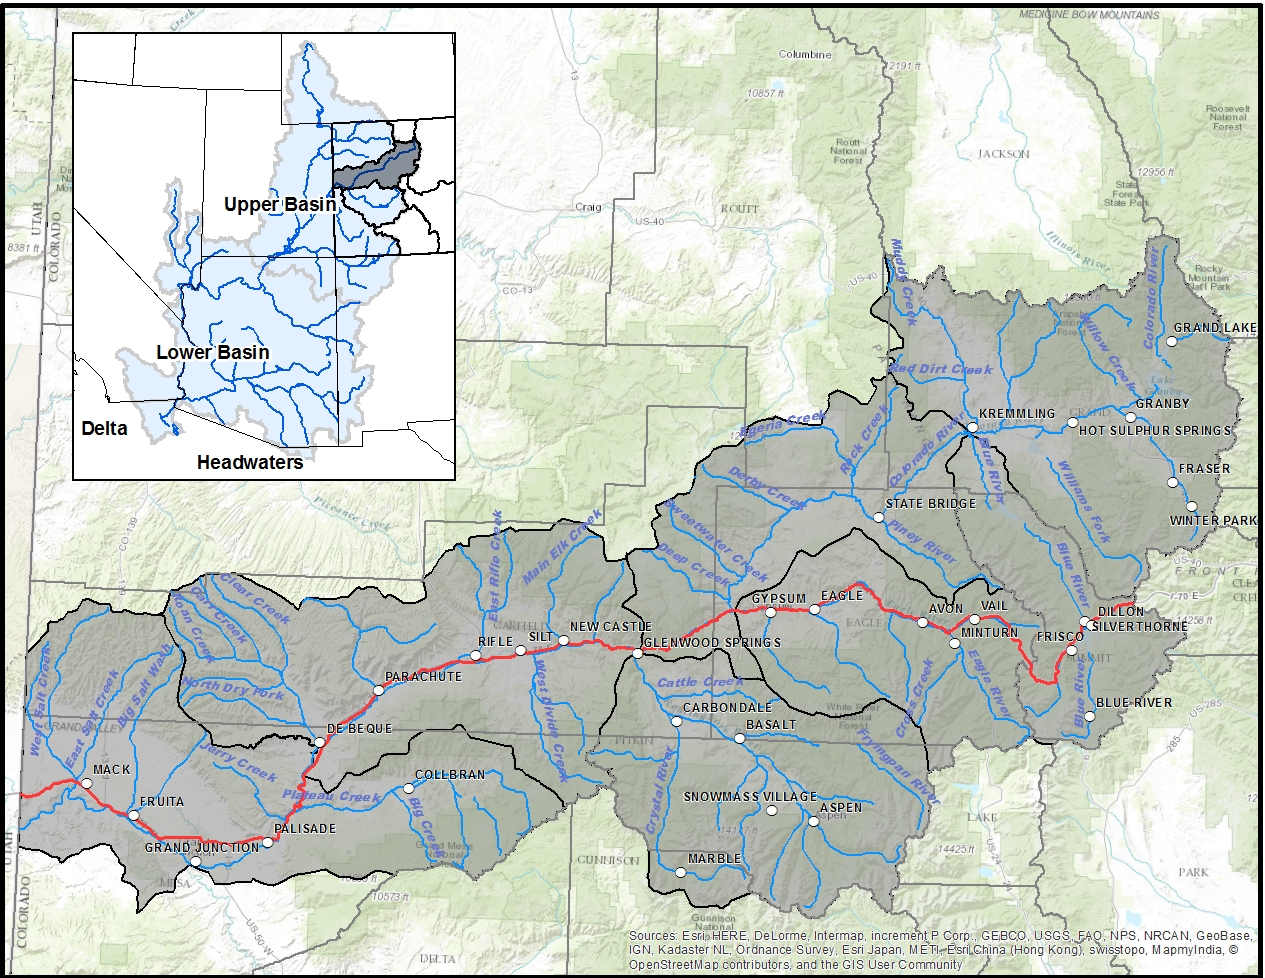 Colorado River Headwaters Map